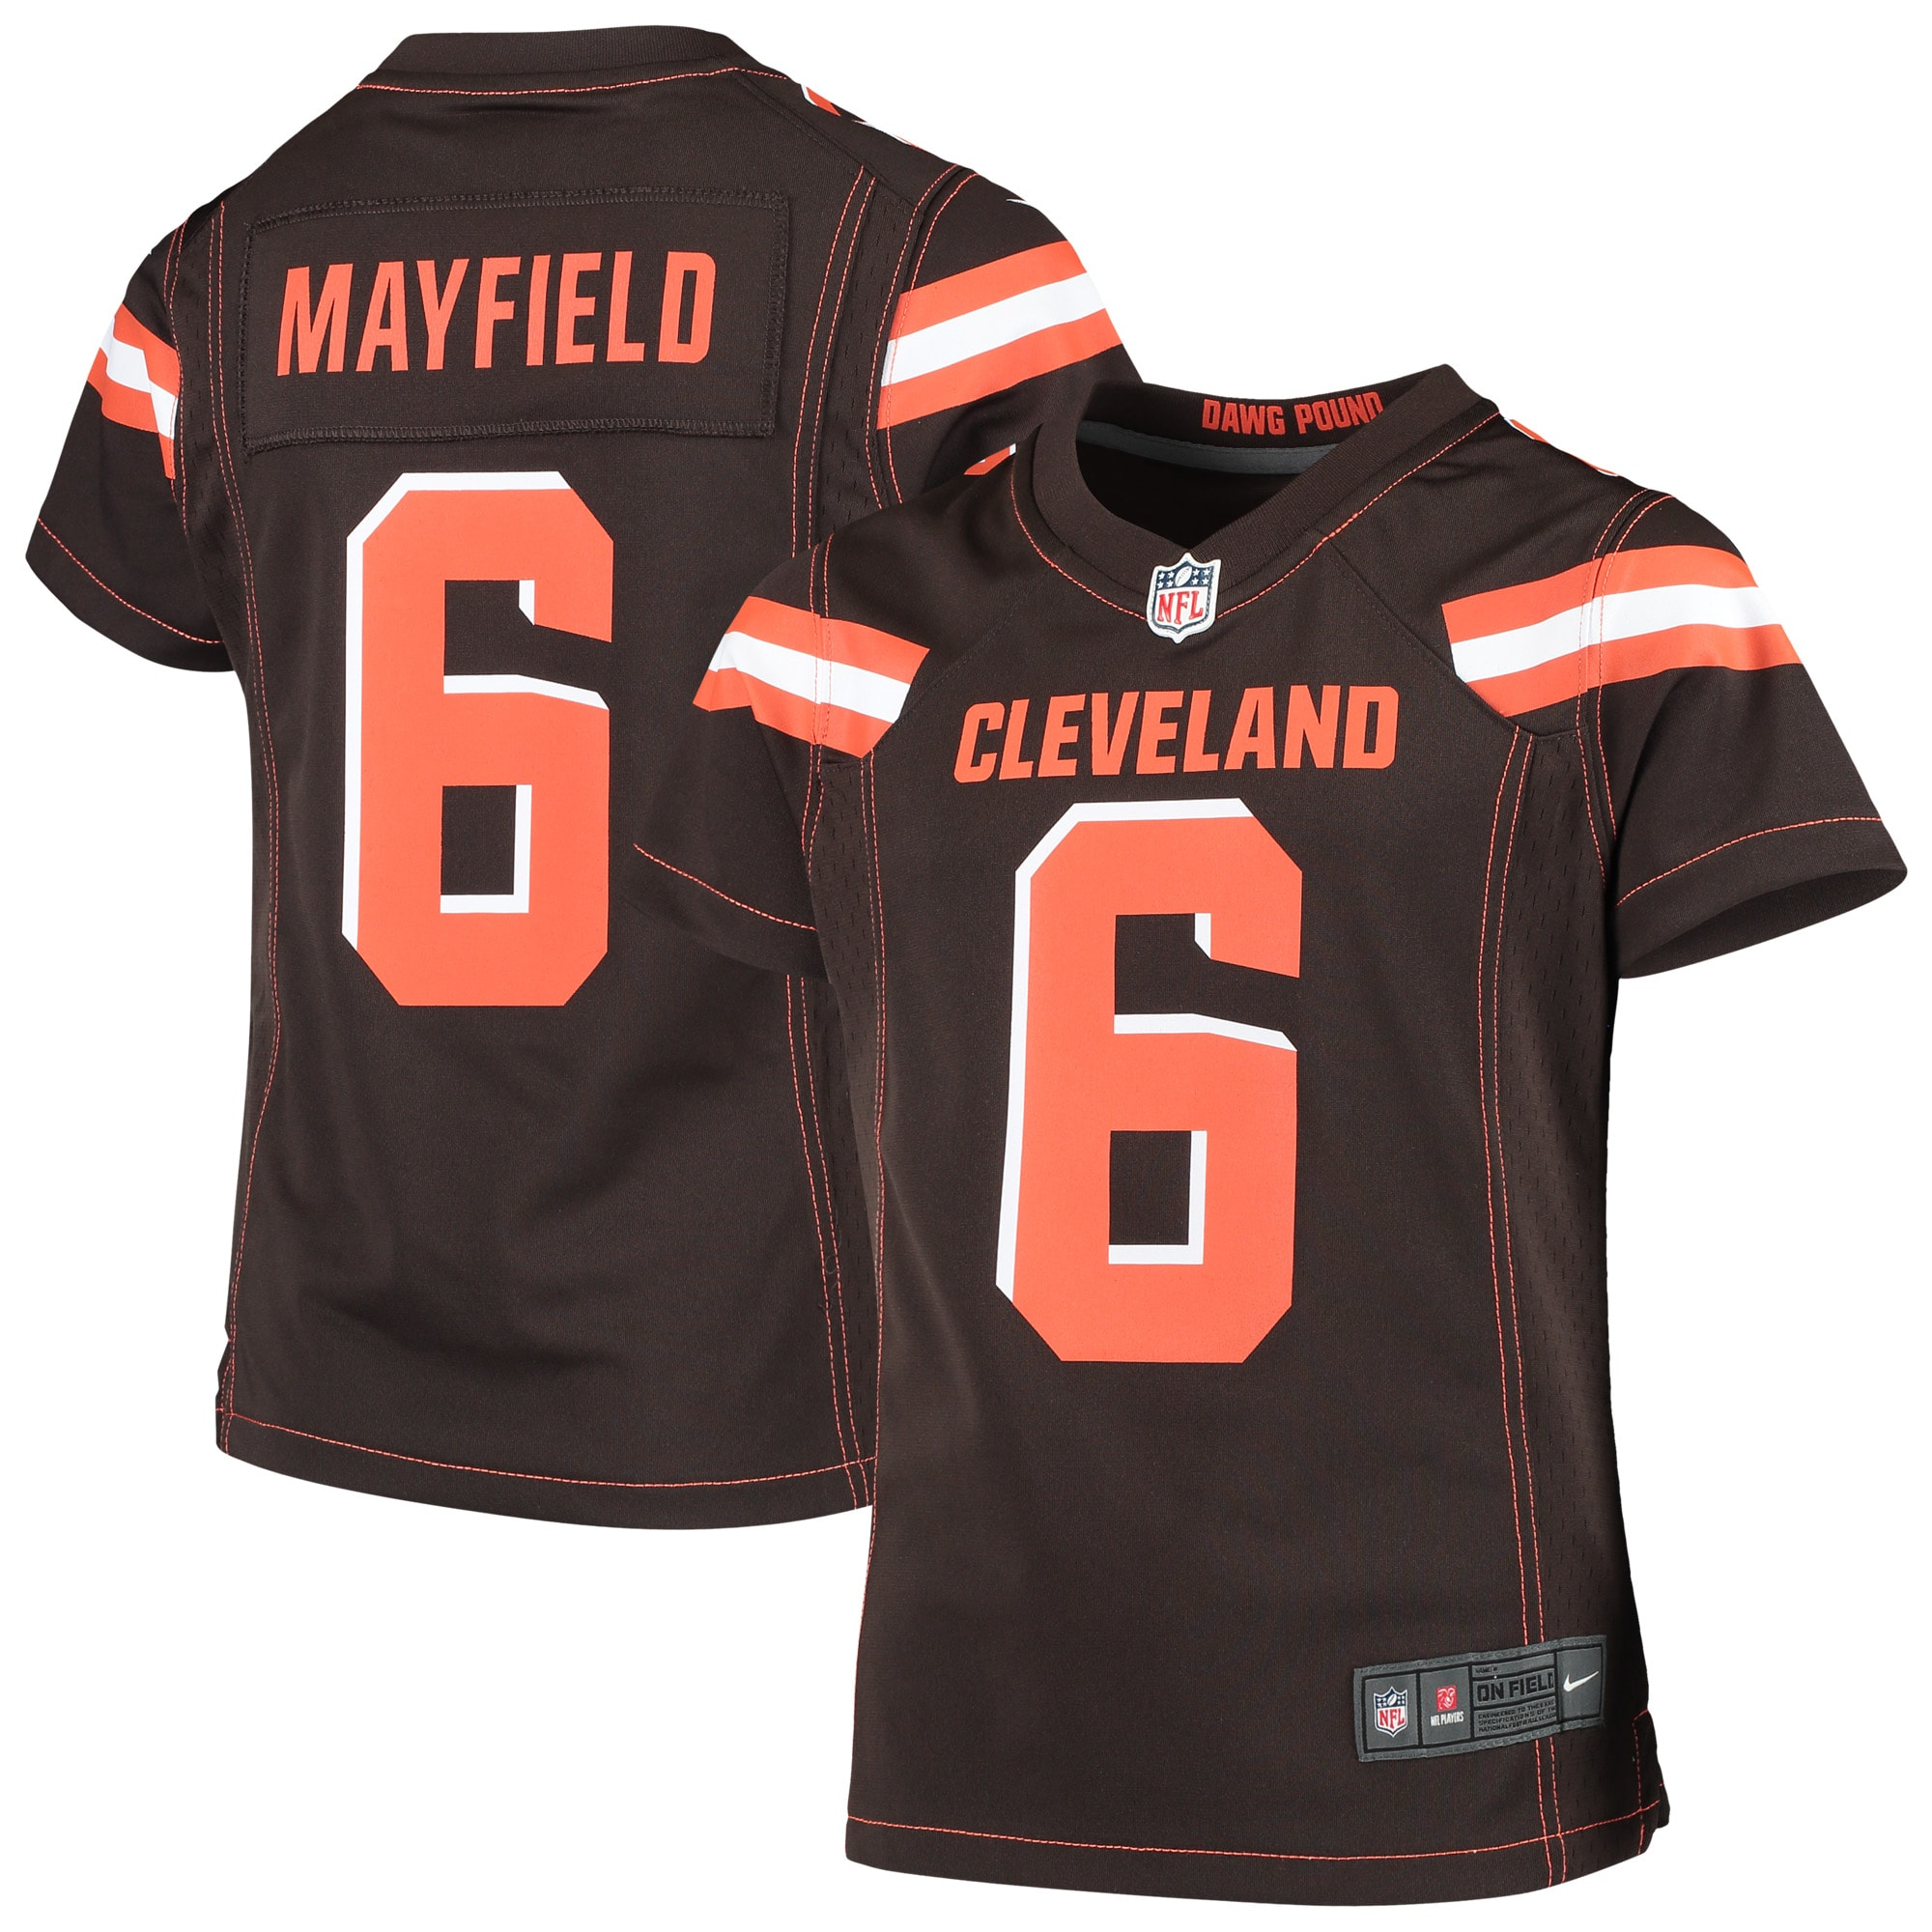 Baker Mayfield Cleveland Browns Nike Girls Youth Game Jersey - Brown